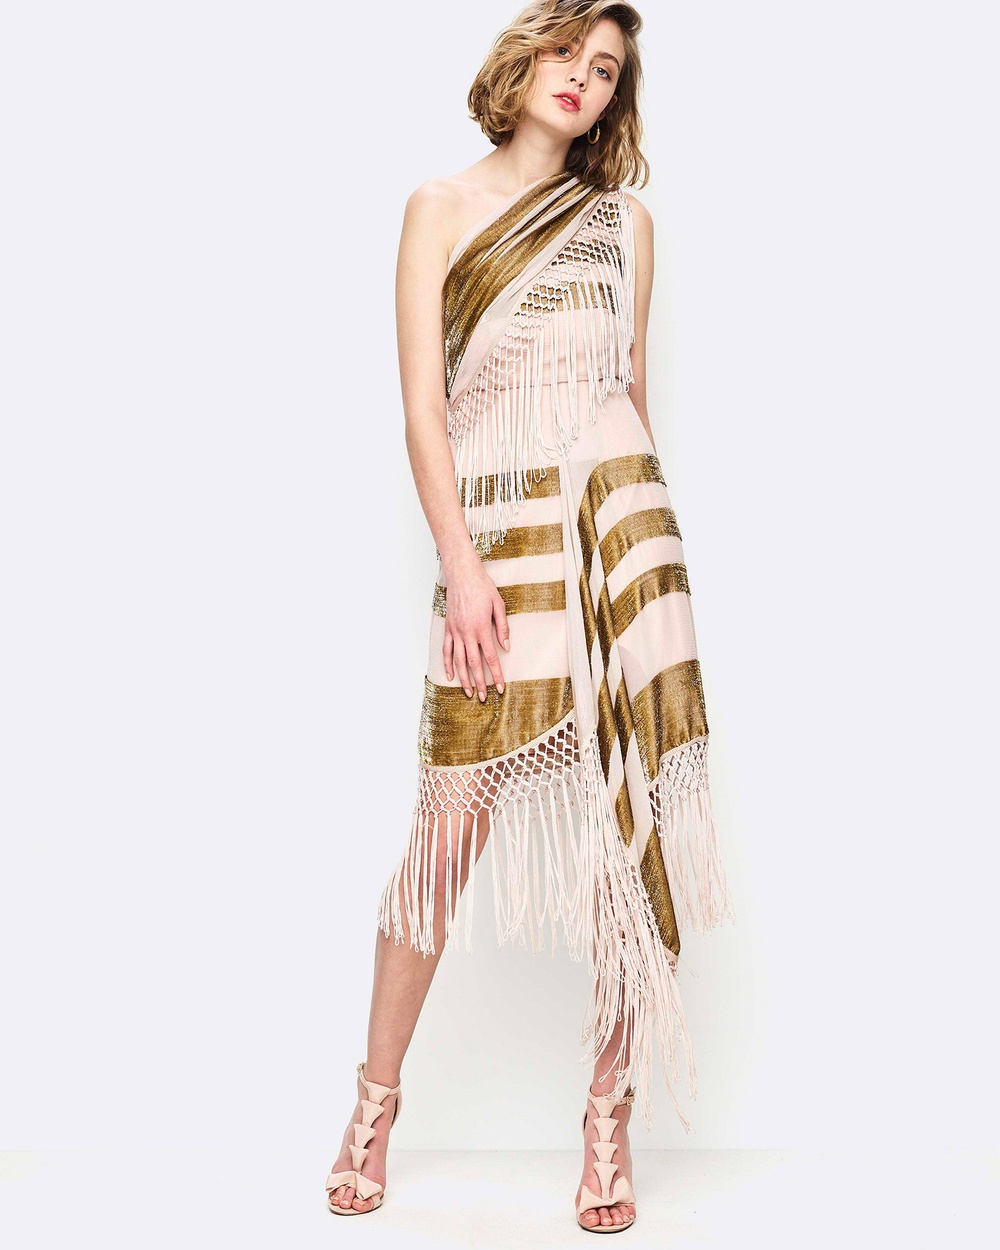 alice McCALL For Her Dress Dresses Nude-Gold For Her Dress